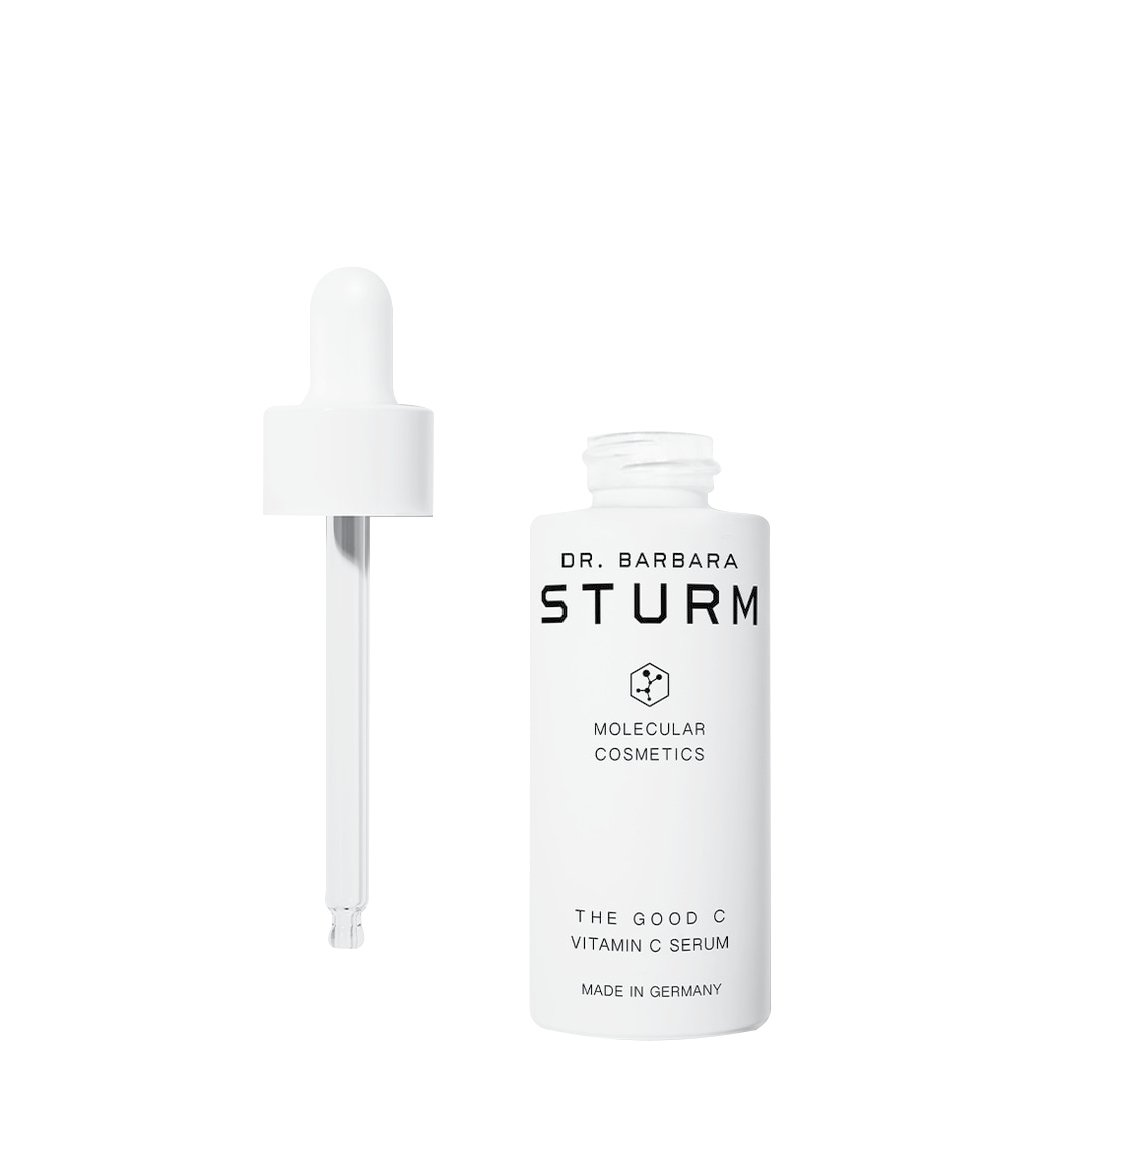 Dr. Barbara Sturm The Good C Vitamin C Serum 30ml